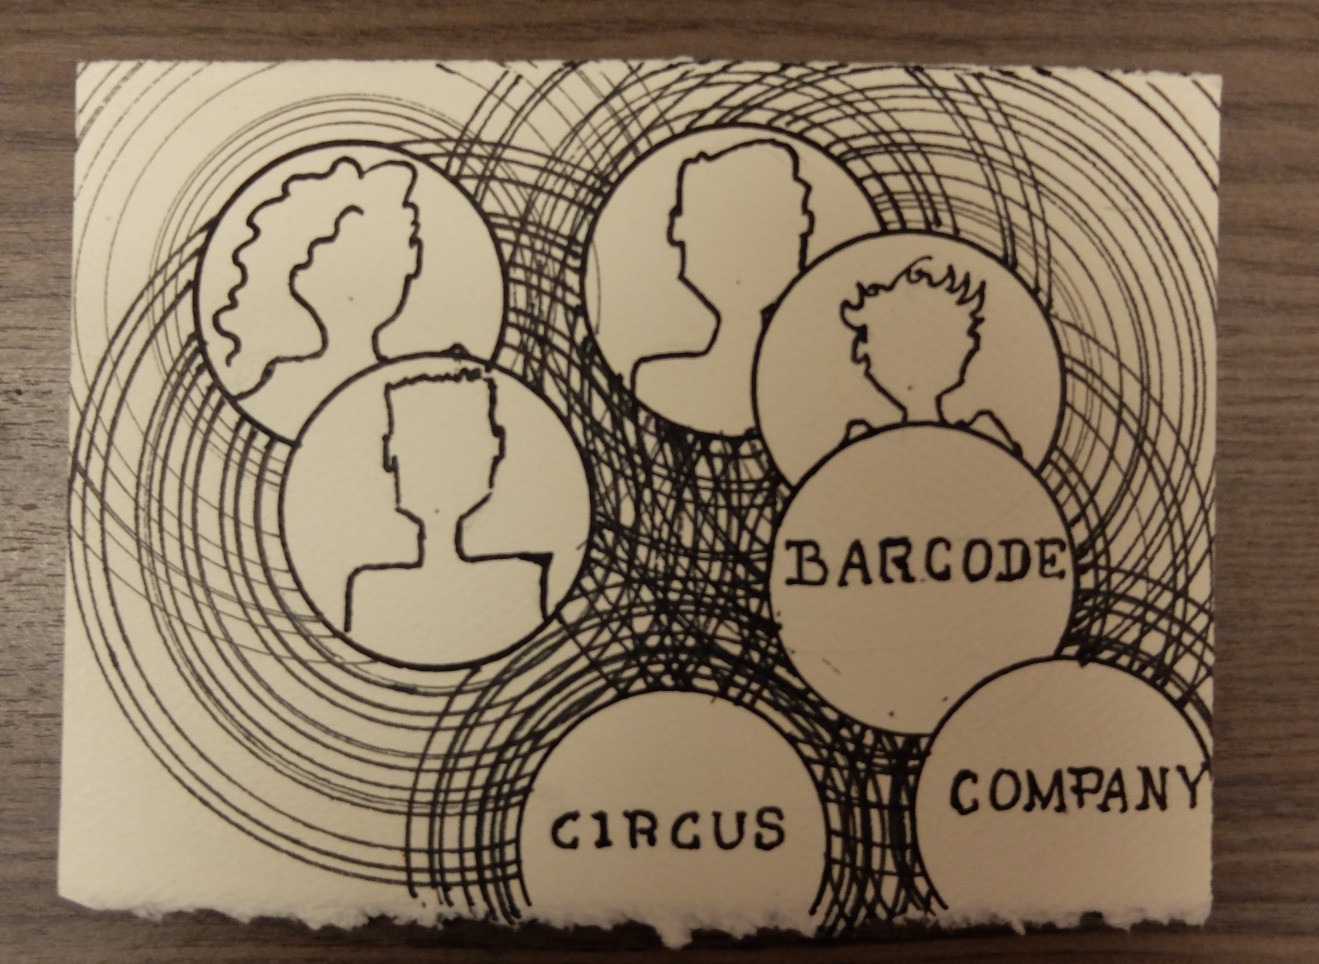 Barcode Circus Company by Eve Bigel